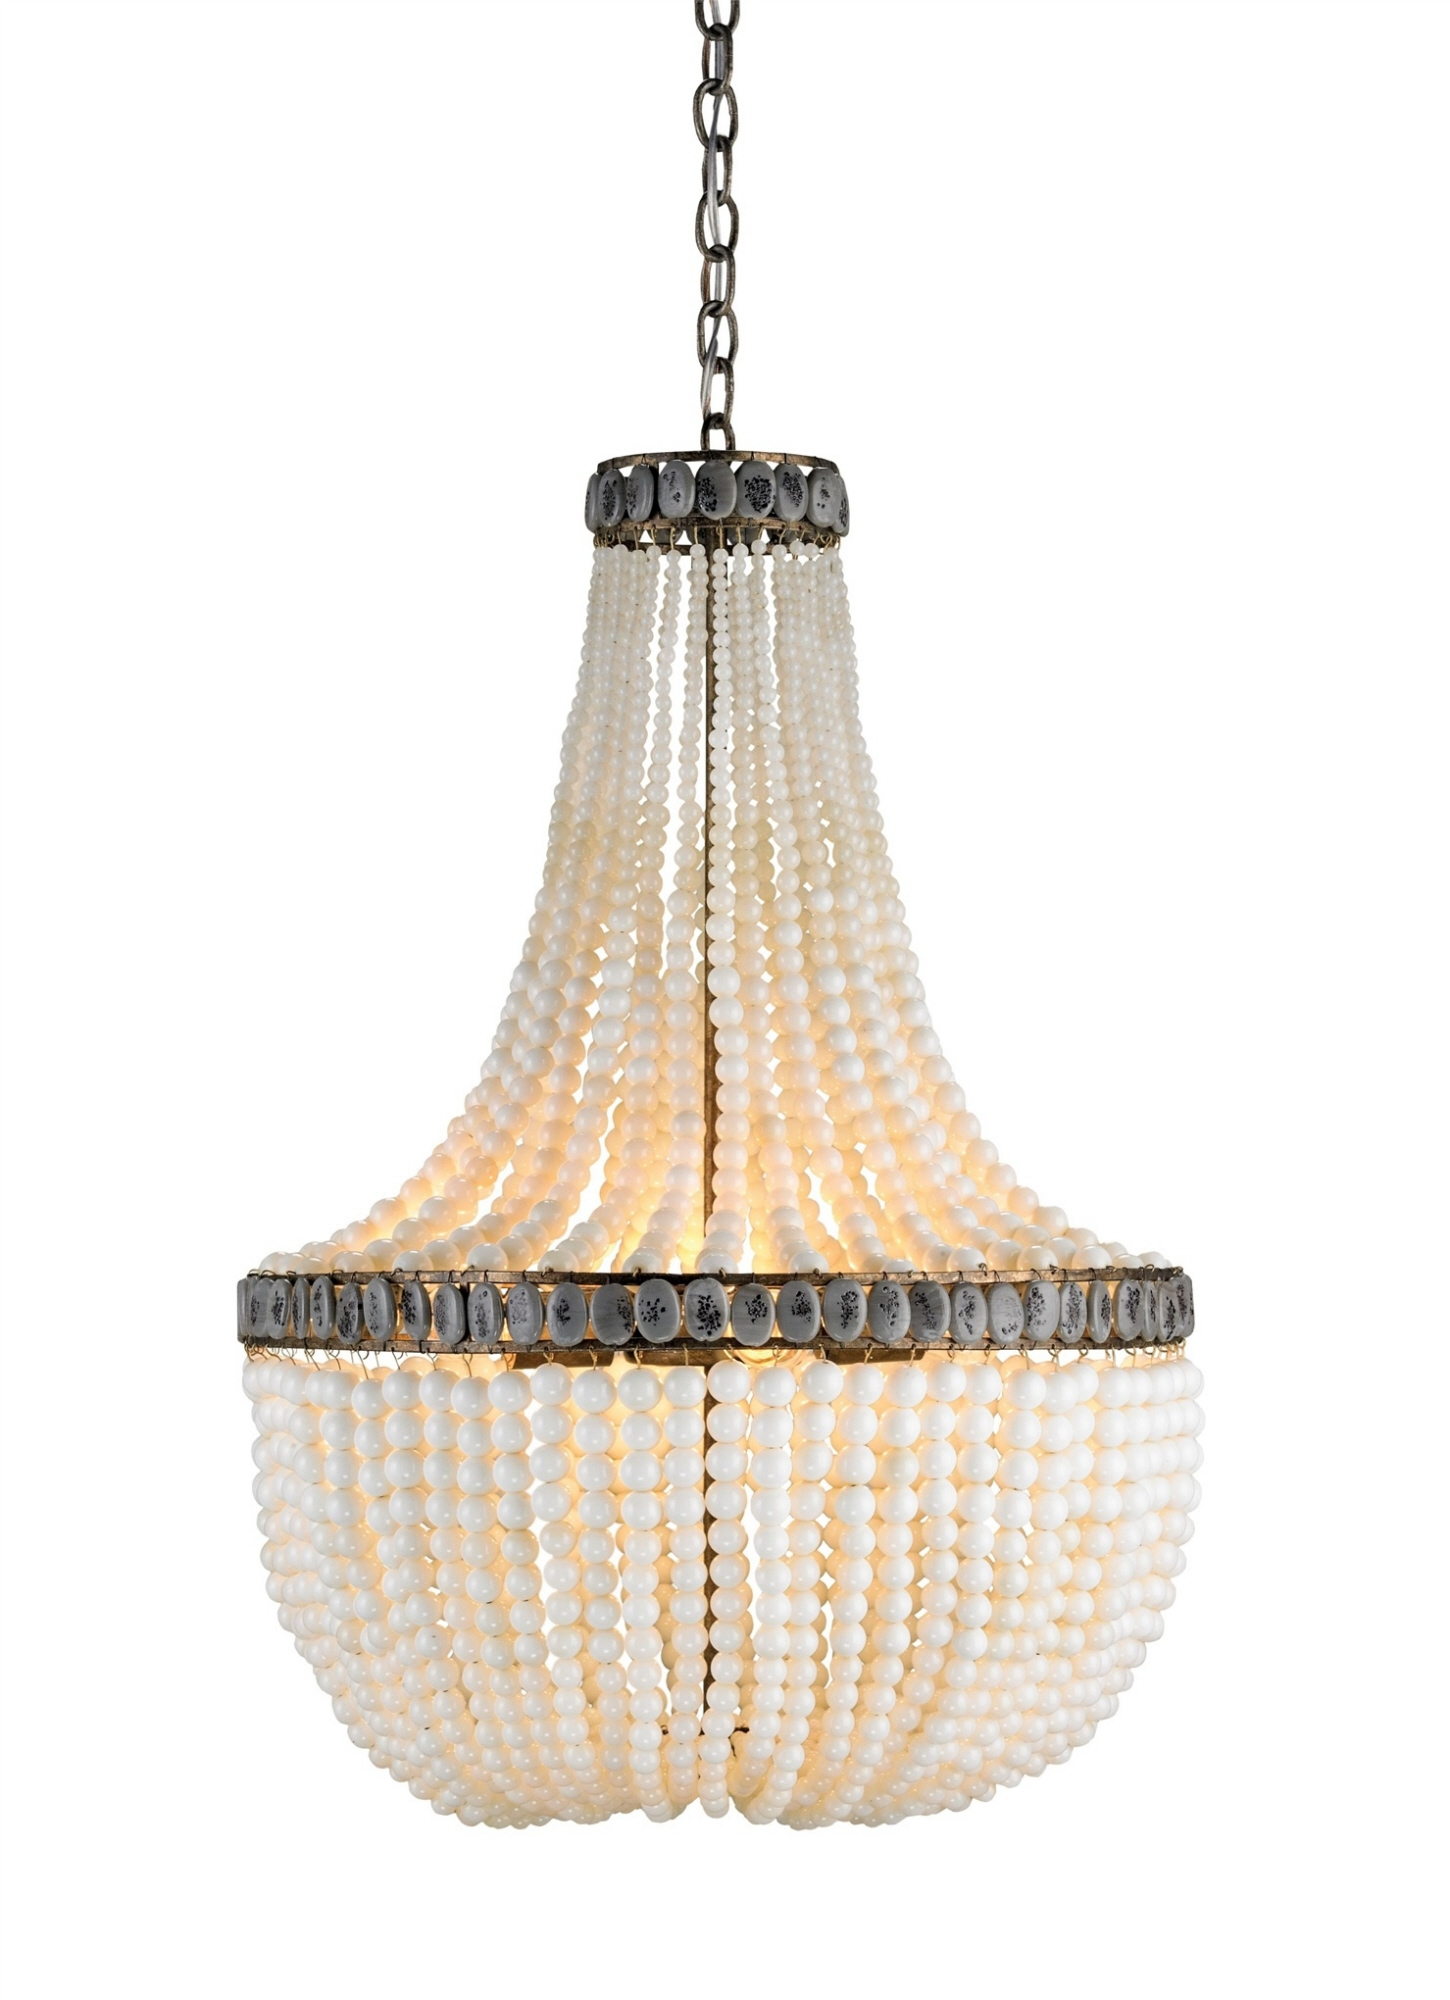 Hedy Chandelier Lighting Cream Currey And Company Regarding Large Cream Chandelier (View 14 of 15)